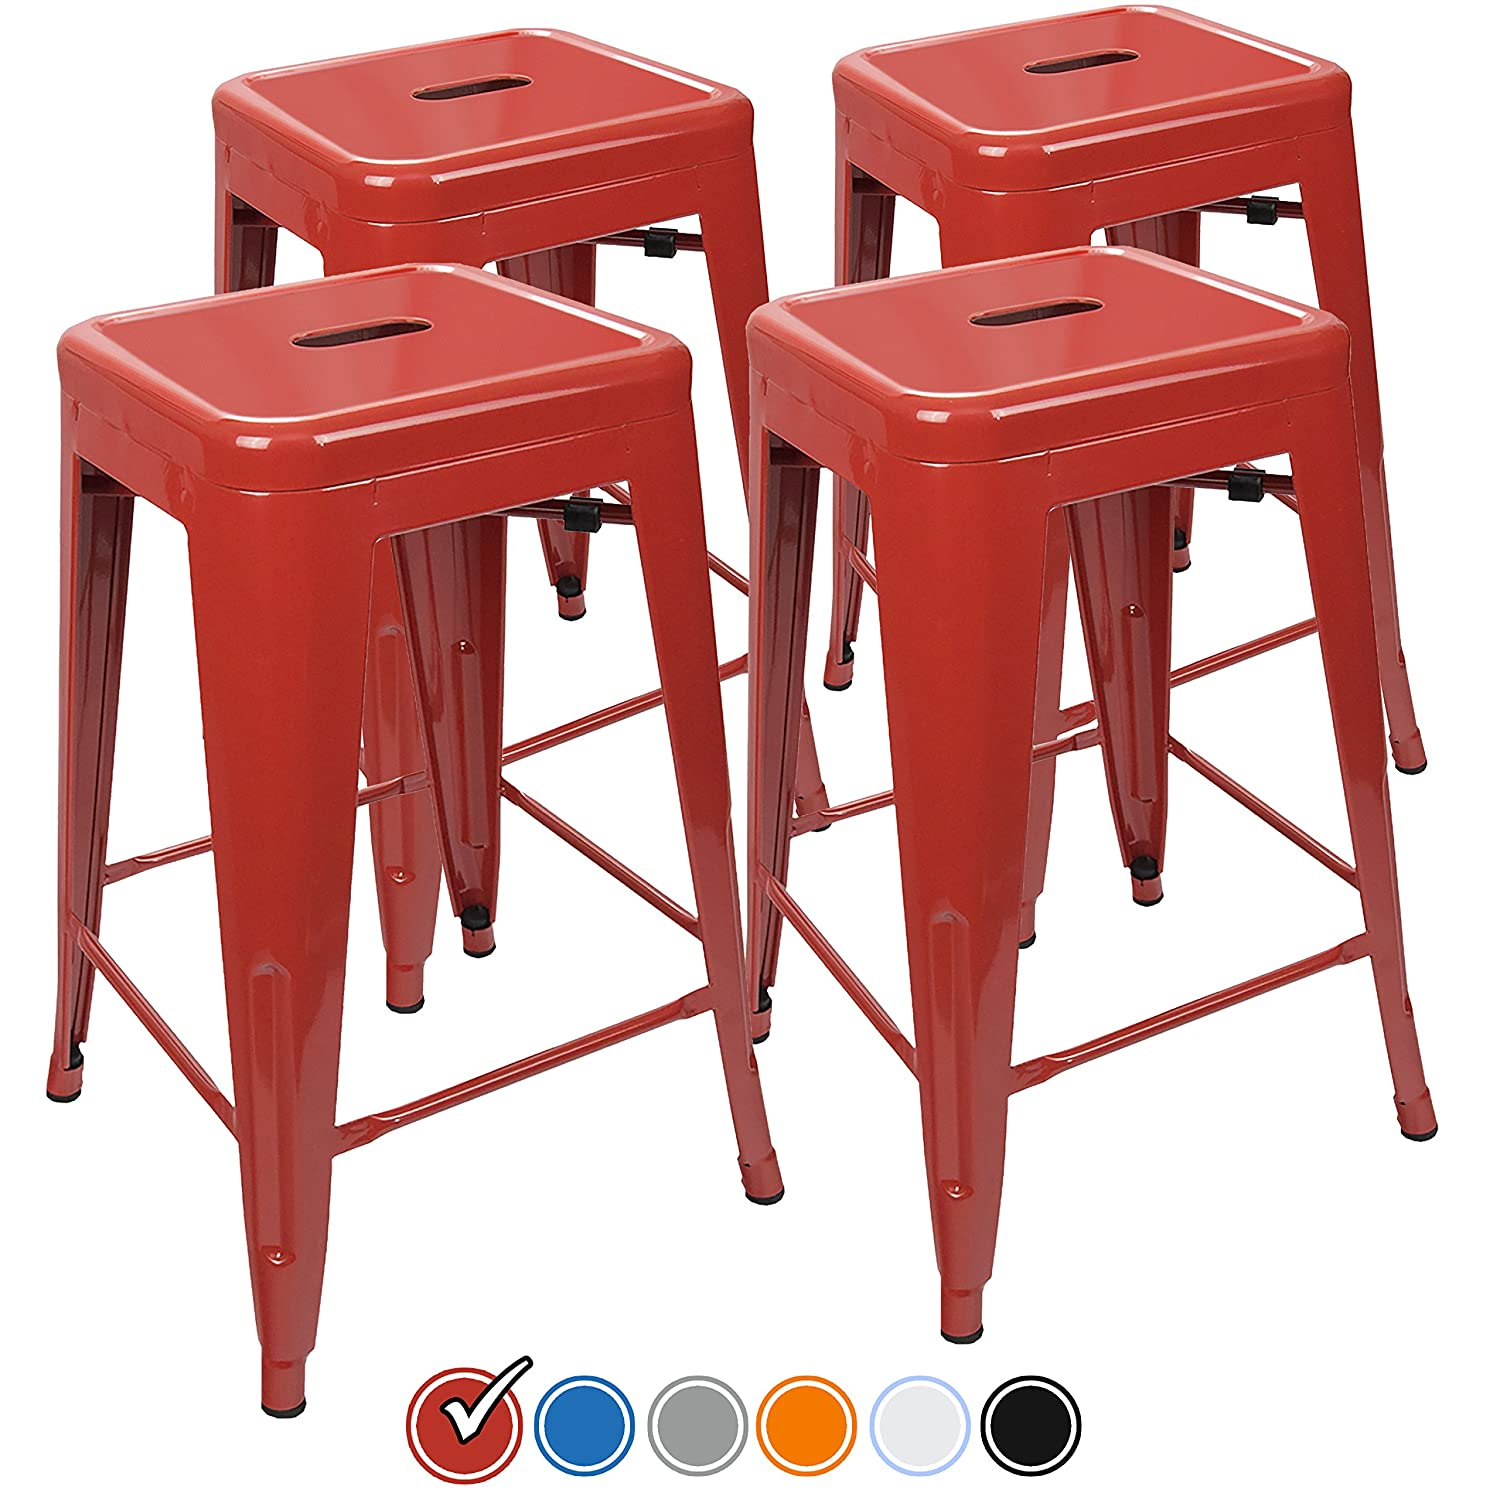 Surprising Urbanmod 24 Inch Bar Stools For Kitchen Counter Height Indoor Outdoor Metal Set Of 4 Red Pdpeps Interior Chair Design Pdpepsorg